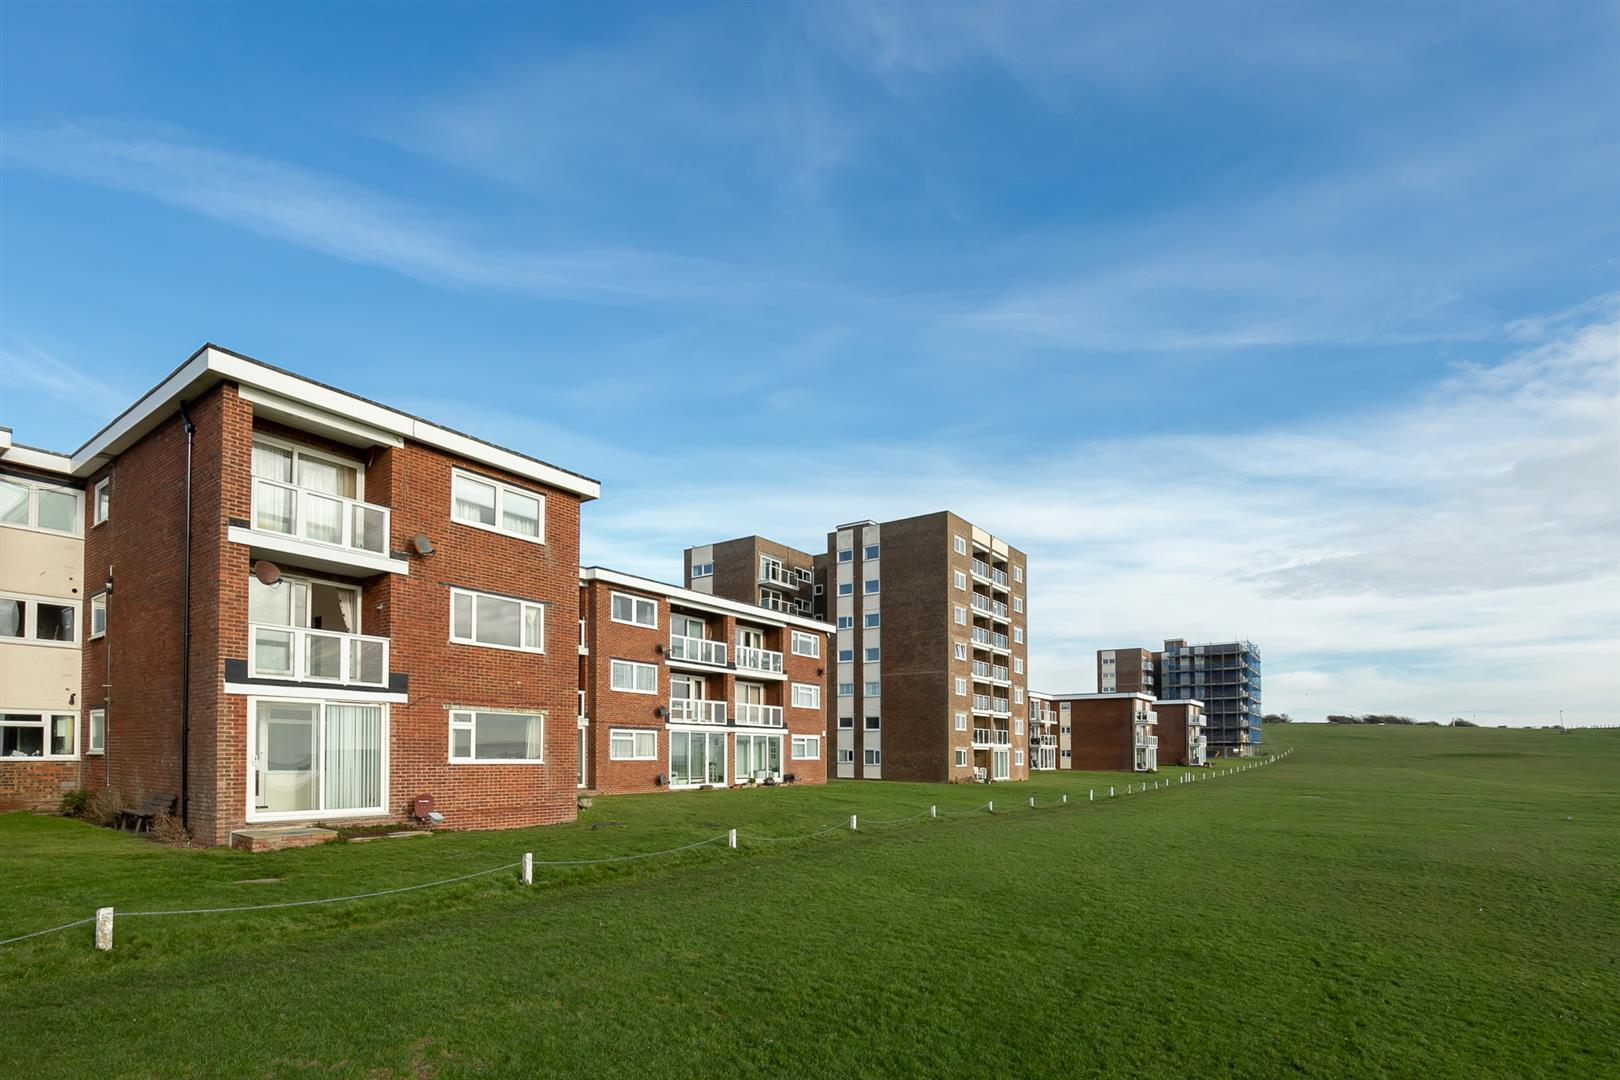 2 bed flat for sale in Sutton Place, Bexhill-On-Sea, TN40